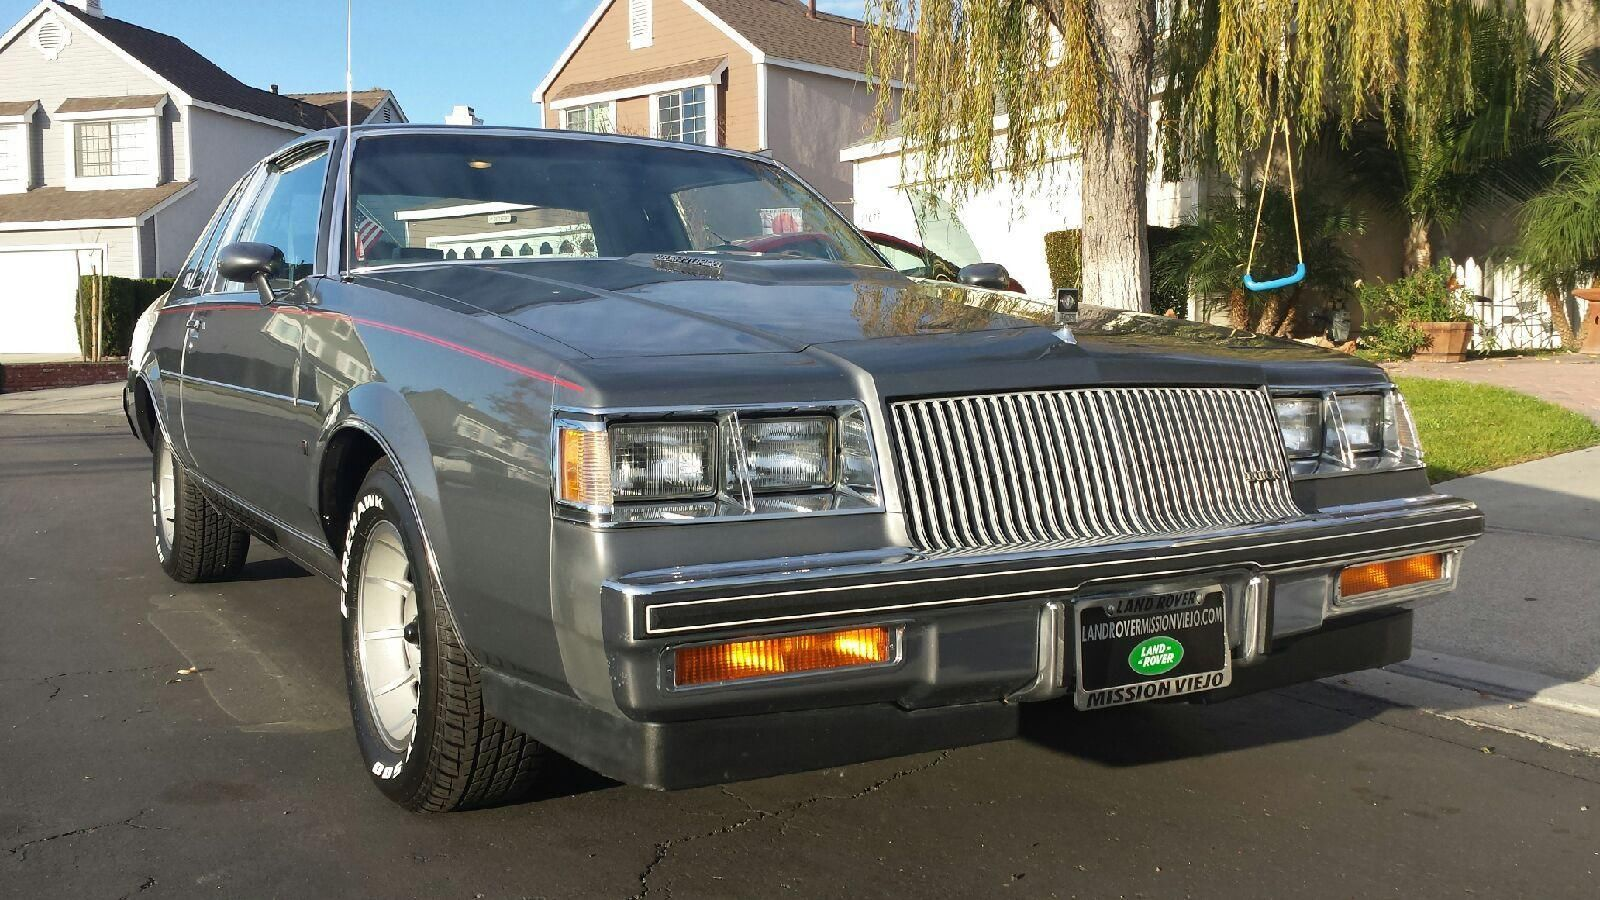 1987 turbo buick regal limited 1 of 1 035 low low miles rust free gnx t type classic buick. Black Bedroom Furniture Sets. Home Design Ideas